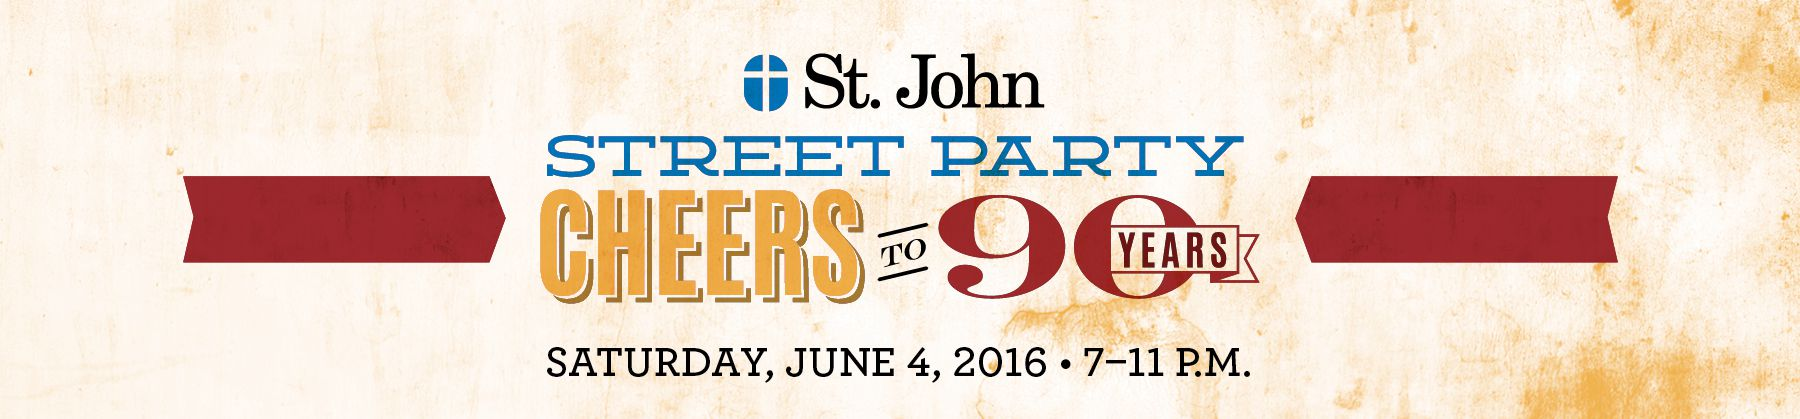 Street Party 2016